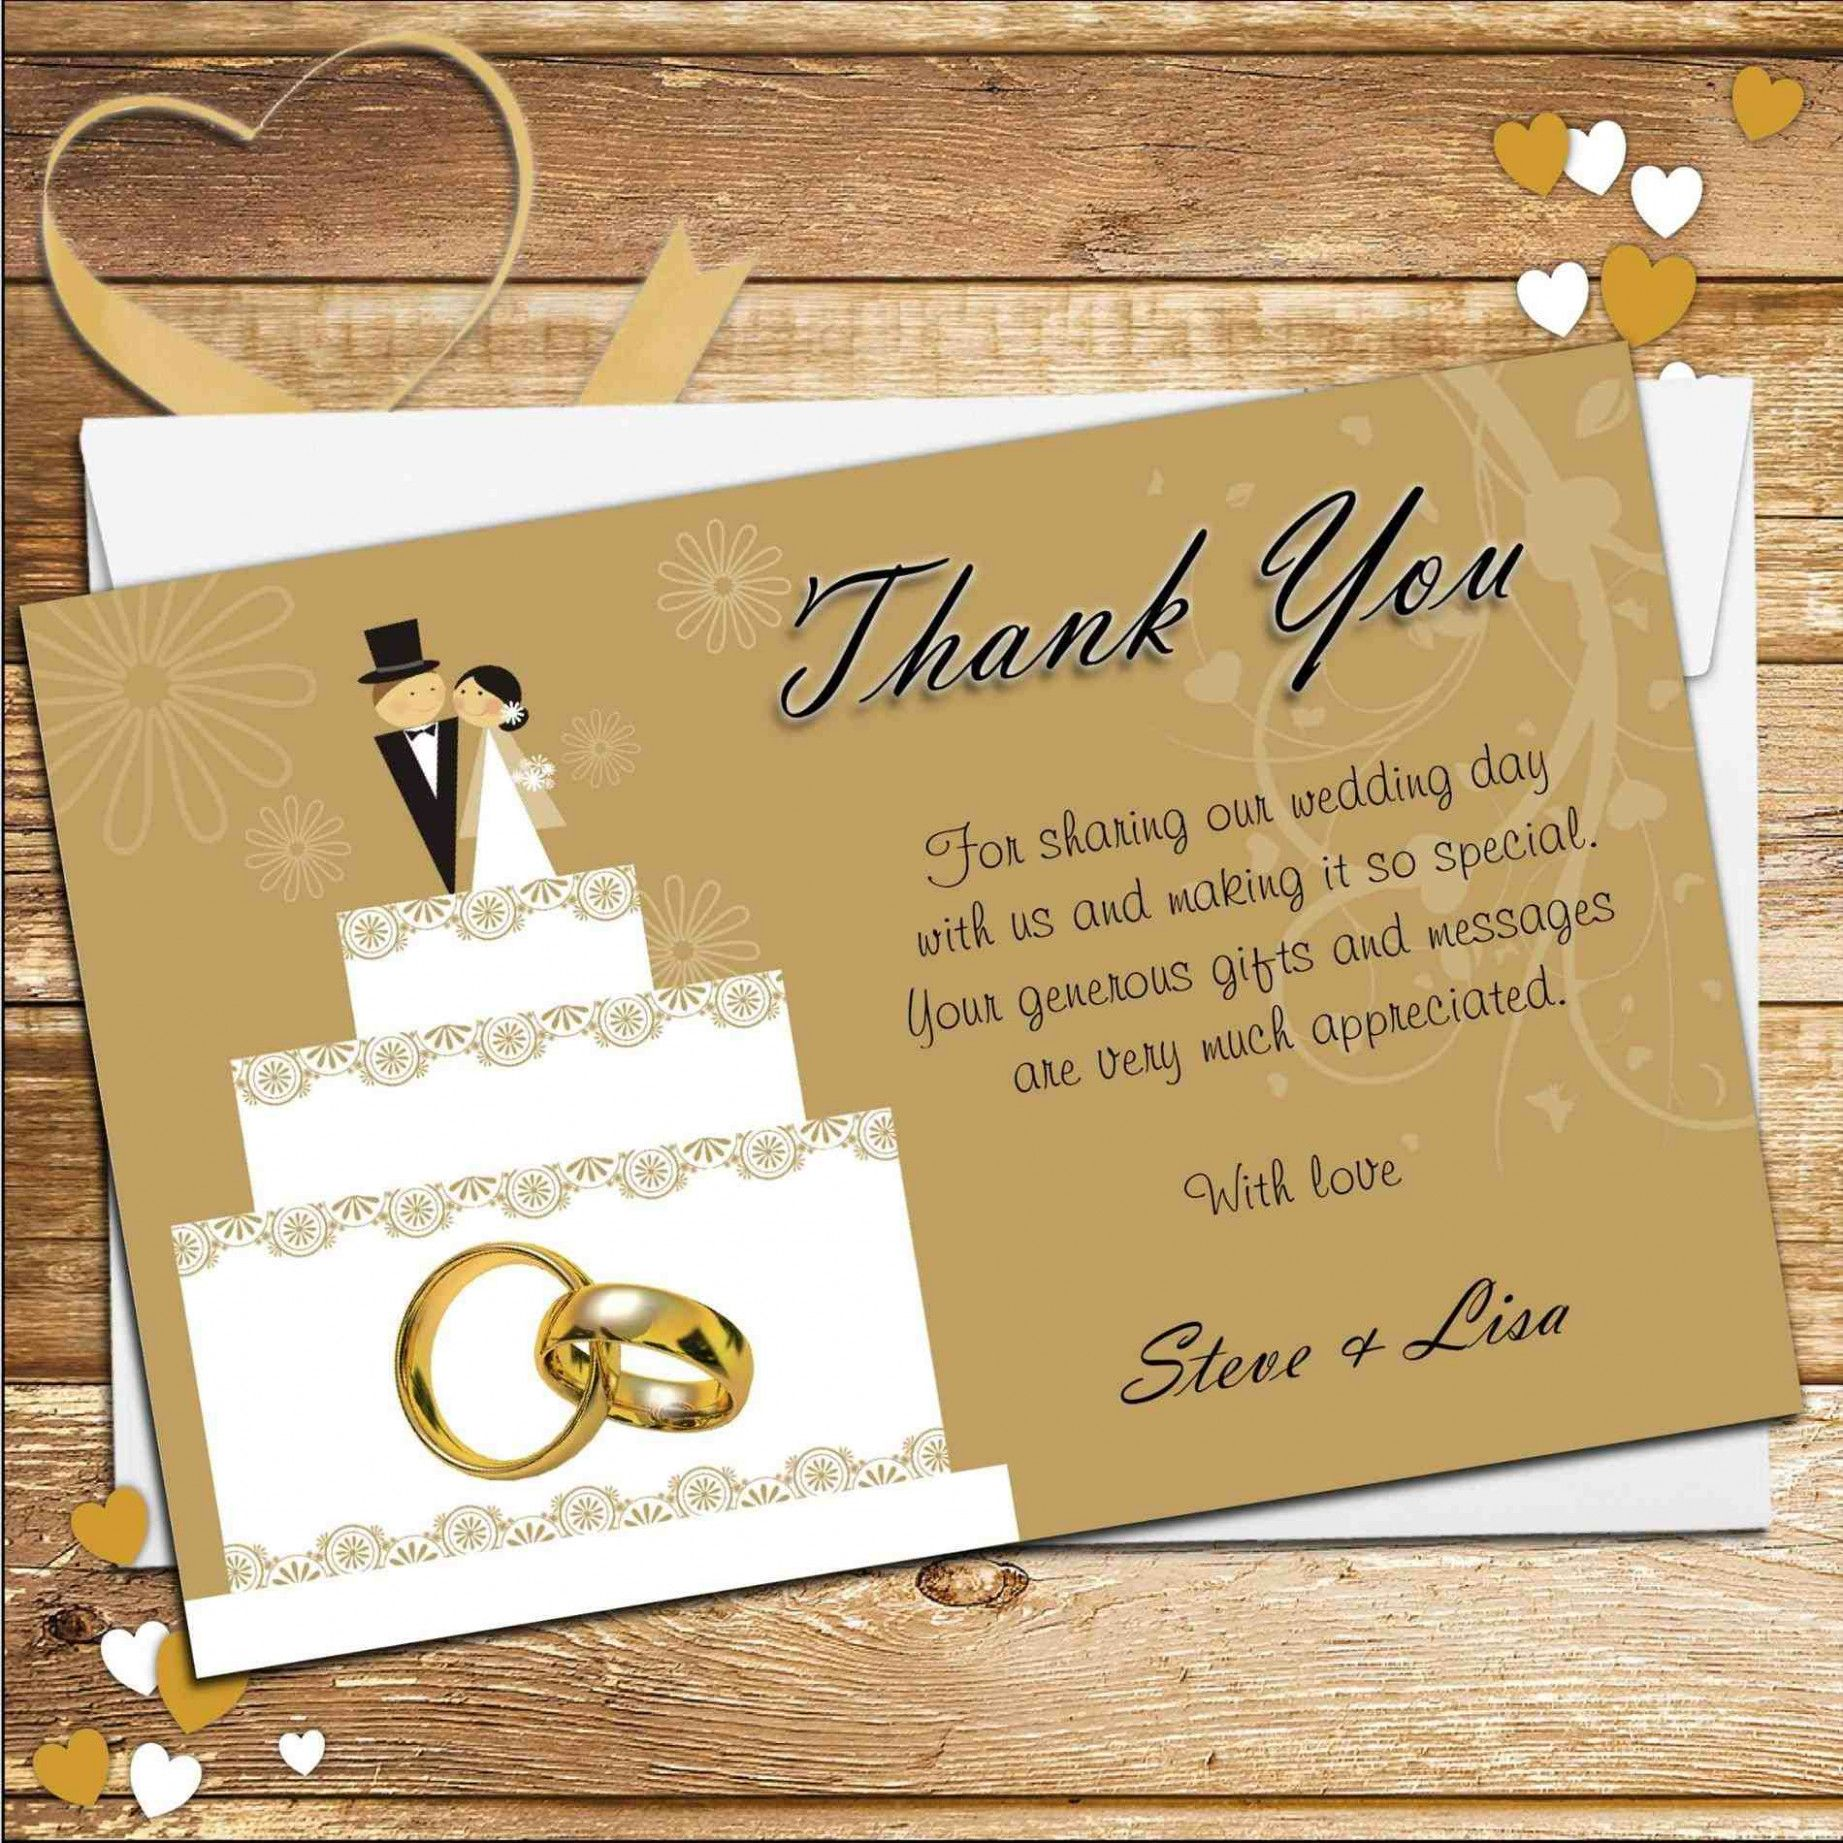 Wedding Card Messages To Bride And Groom Siudy Weddingcard Messagesforbrideandgroom